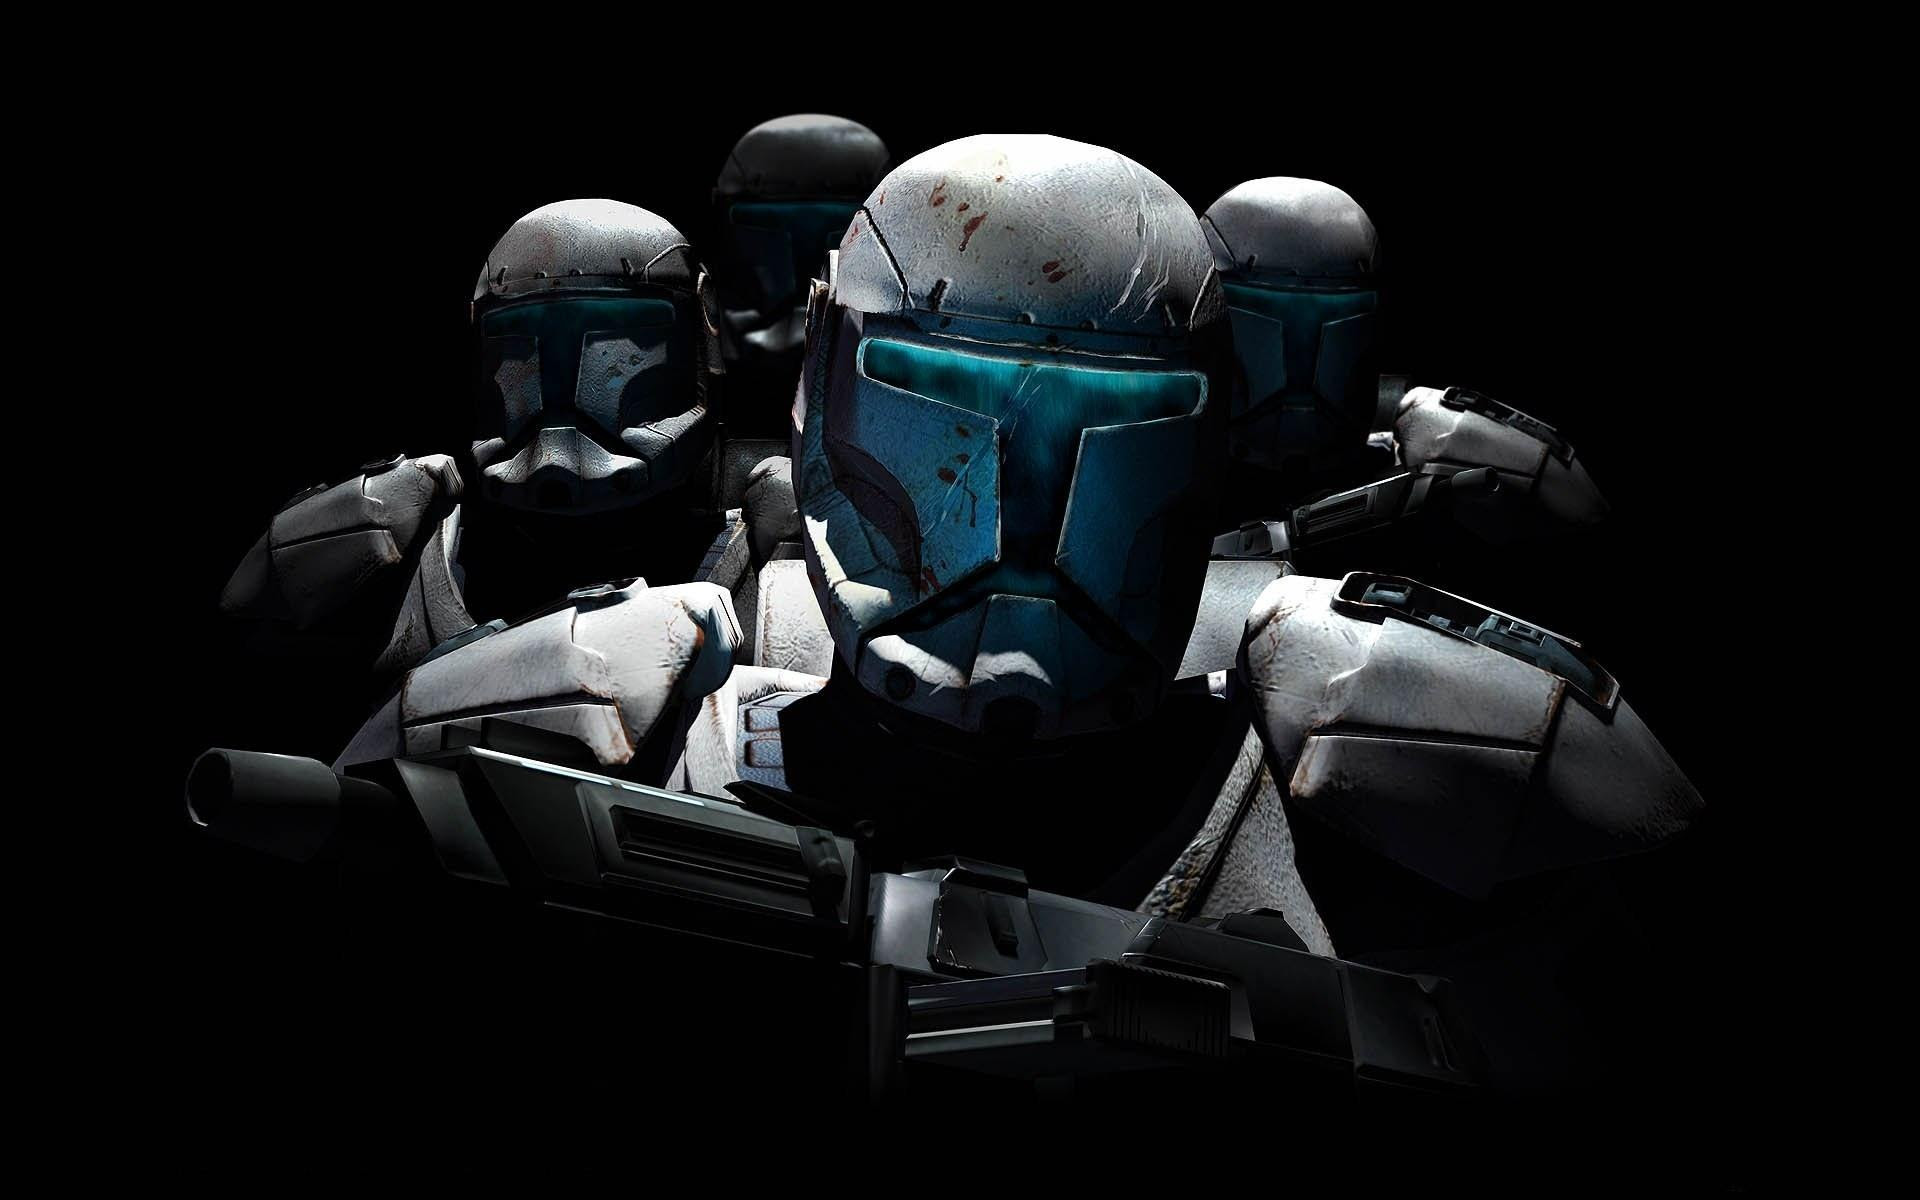 Hd Star Wars Stormtroopers Wallpaper Download Free 148528